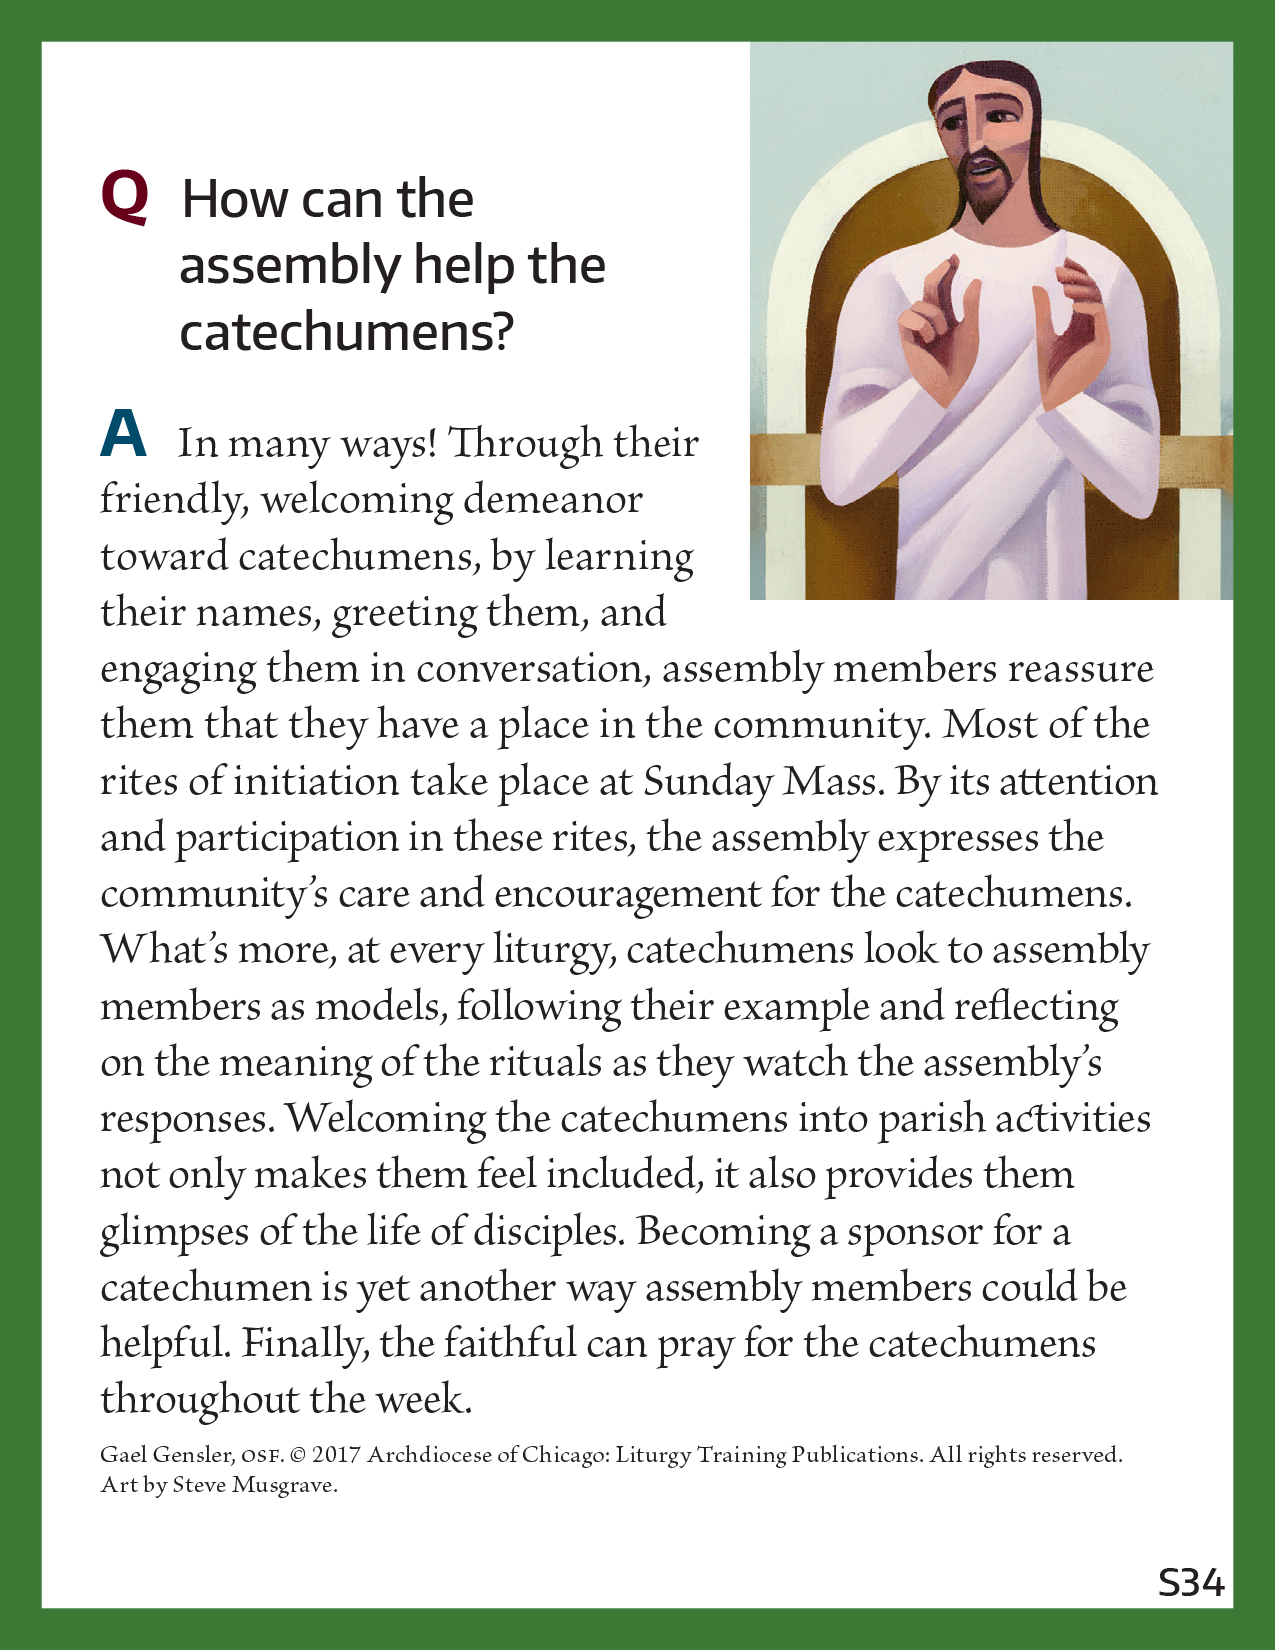 S34-assembly-help-catechumens.jpg